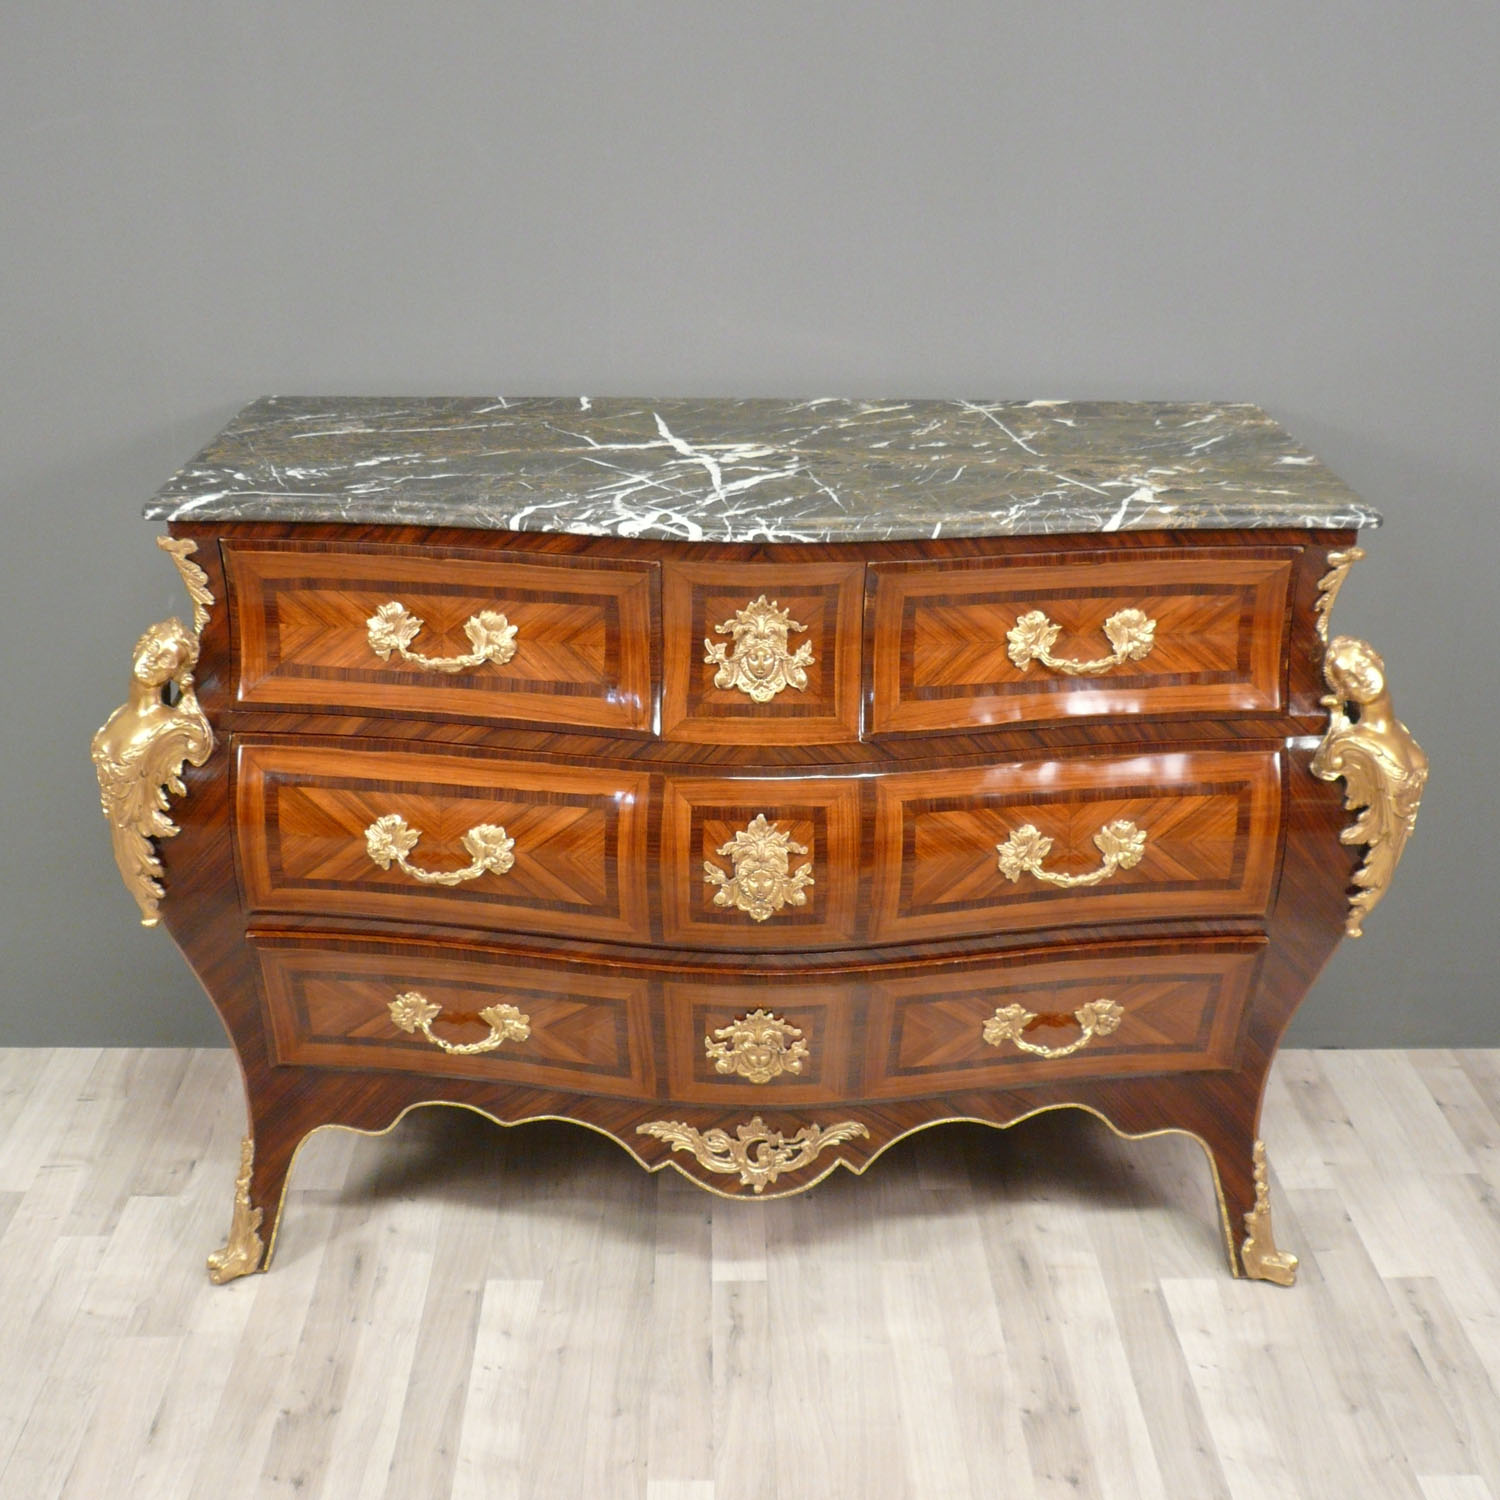 Commodes Louis 15 Point Décoration Les Commodes Louis Xv T Enten Mami